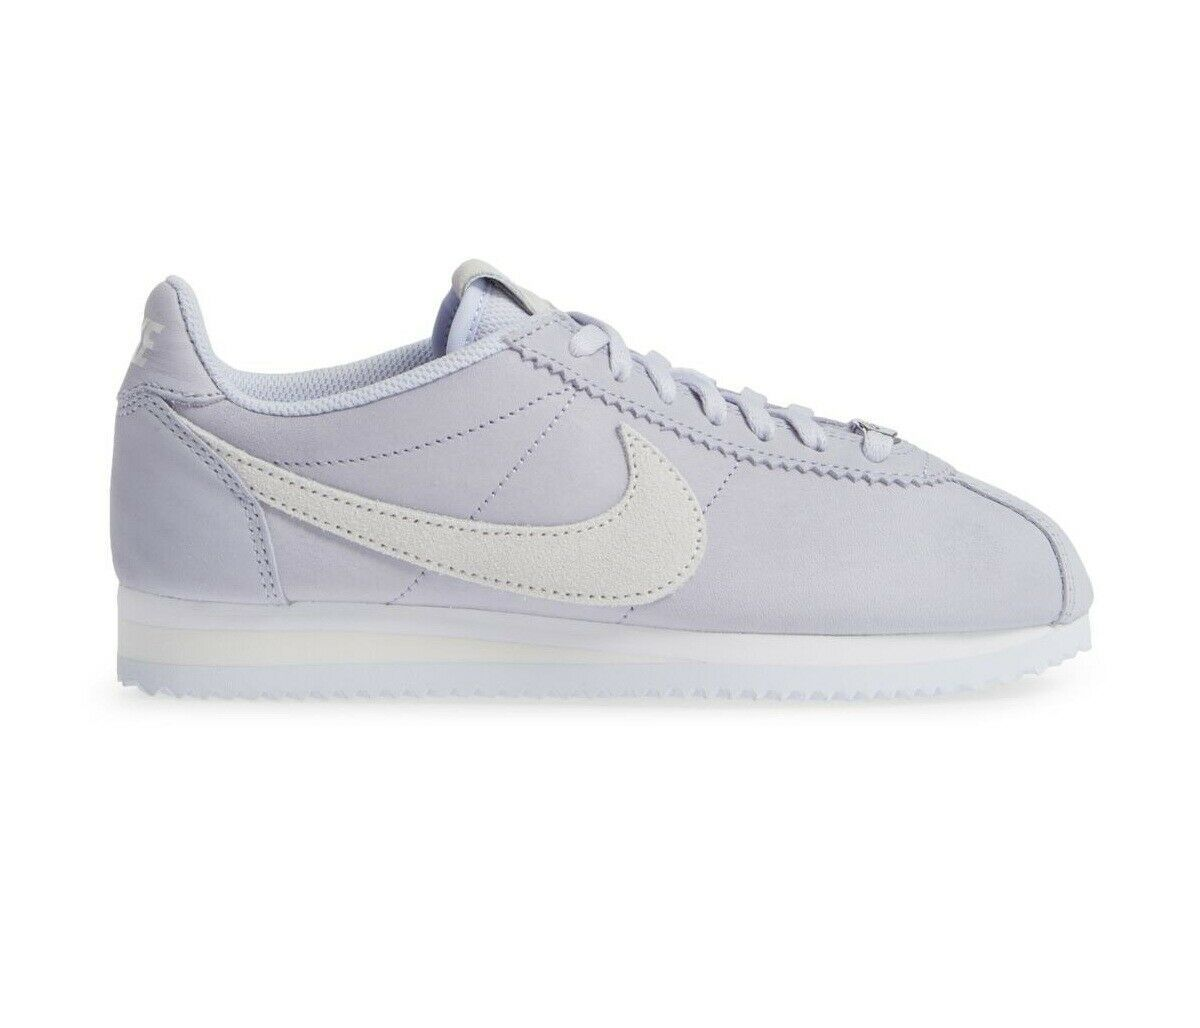 Nike Classic Cortez Leather Palest Purple White AT4999 500 Womens Size 9.5